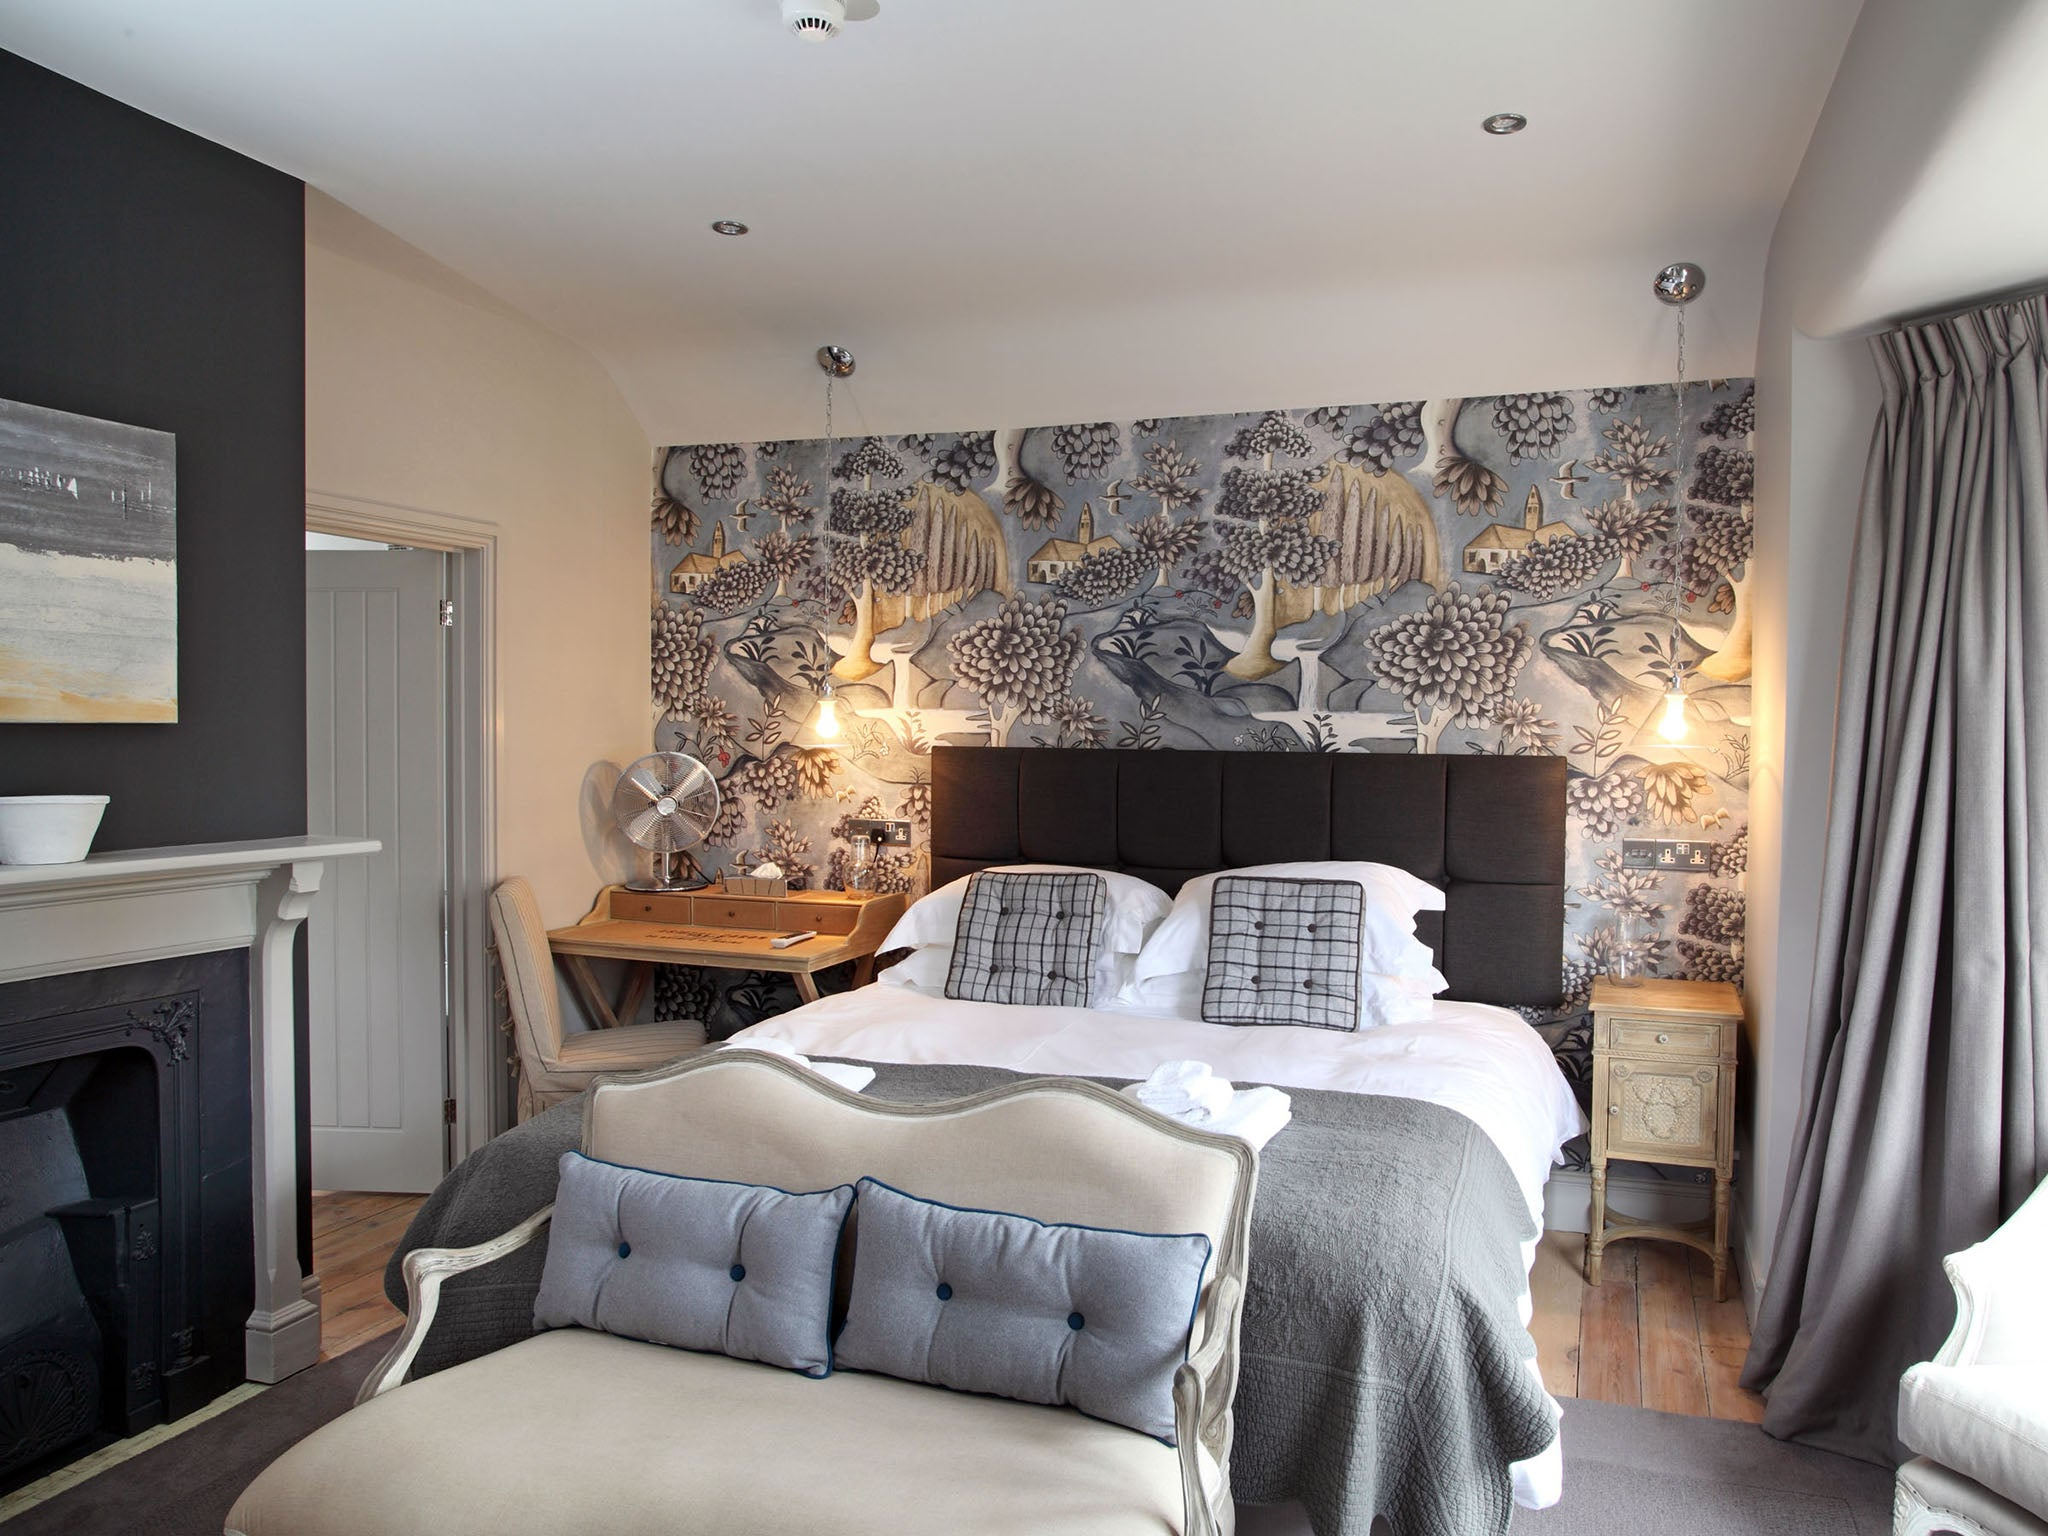 No 33 hunstanton norfolk a stylish coastal getaway the for Boutique room design